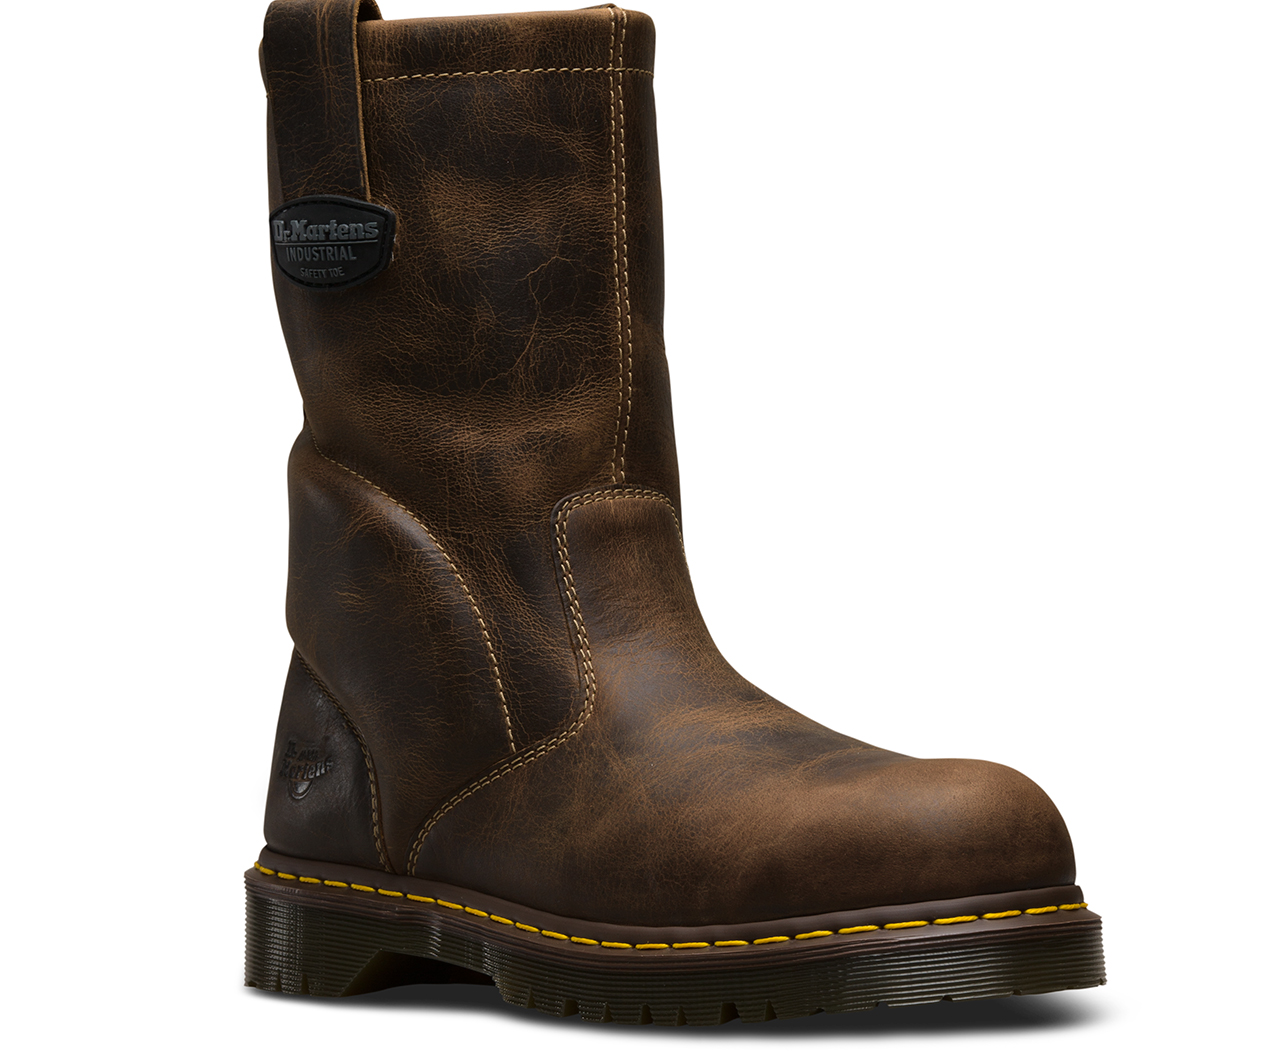 ICON 2295 STEEL TOE   Work Stiefel & Schuhes   The Official US Dr ...